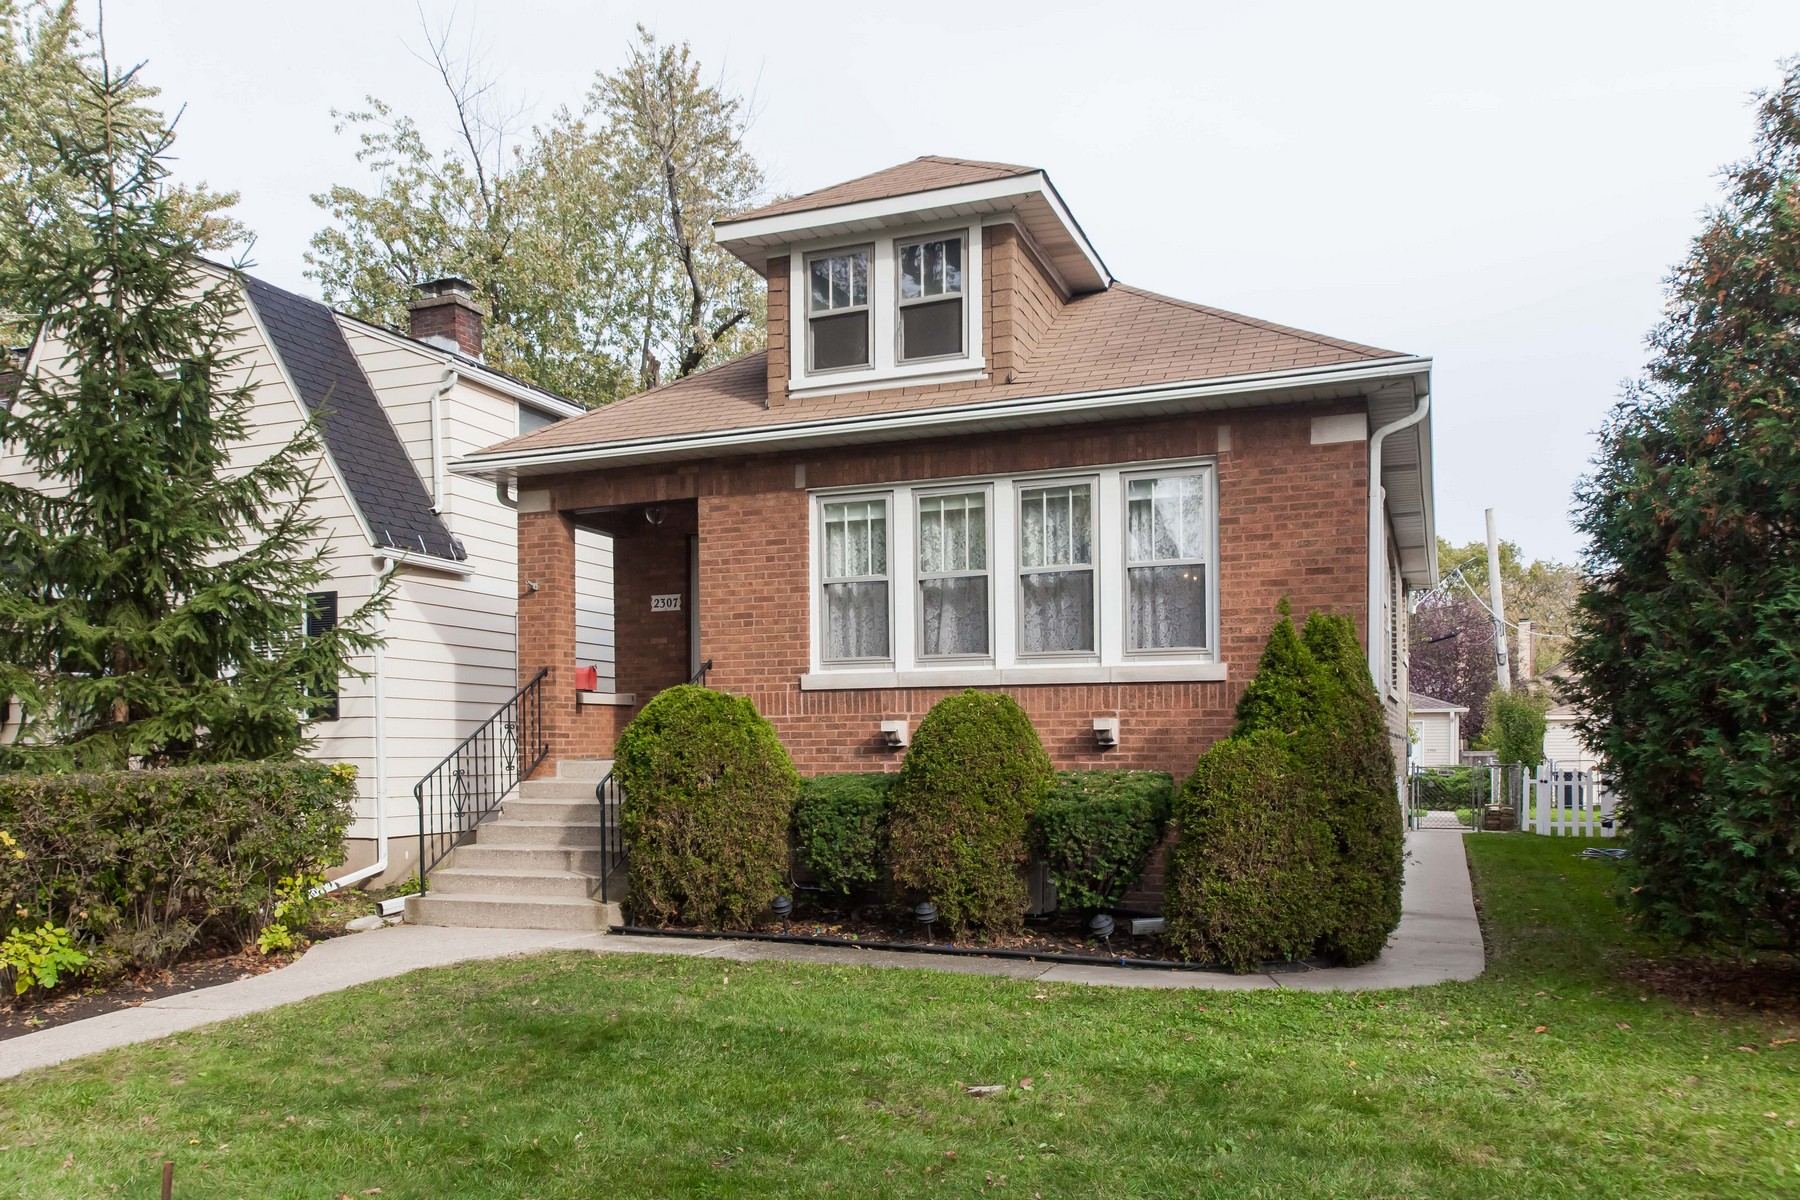 Villa per Vendita alle ore Cozy, Two Bedroom Home 2307 Cowper Avenue Evanston, Illinois, 60201 Stati Uniti